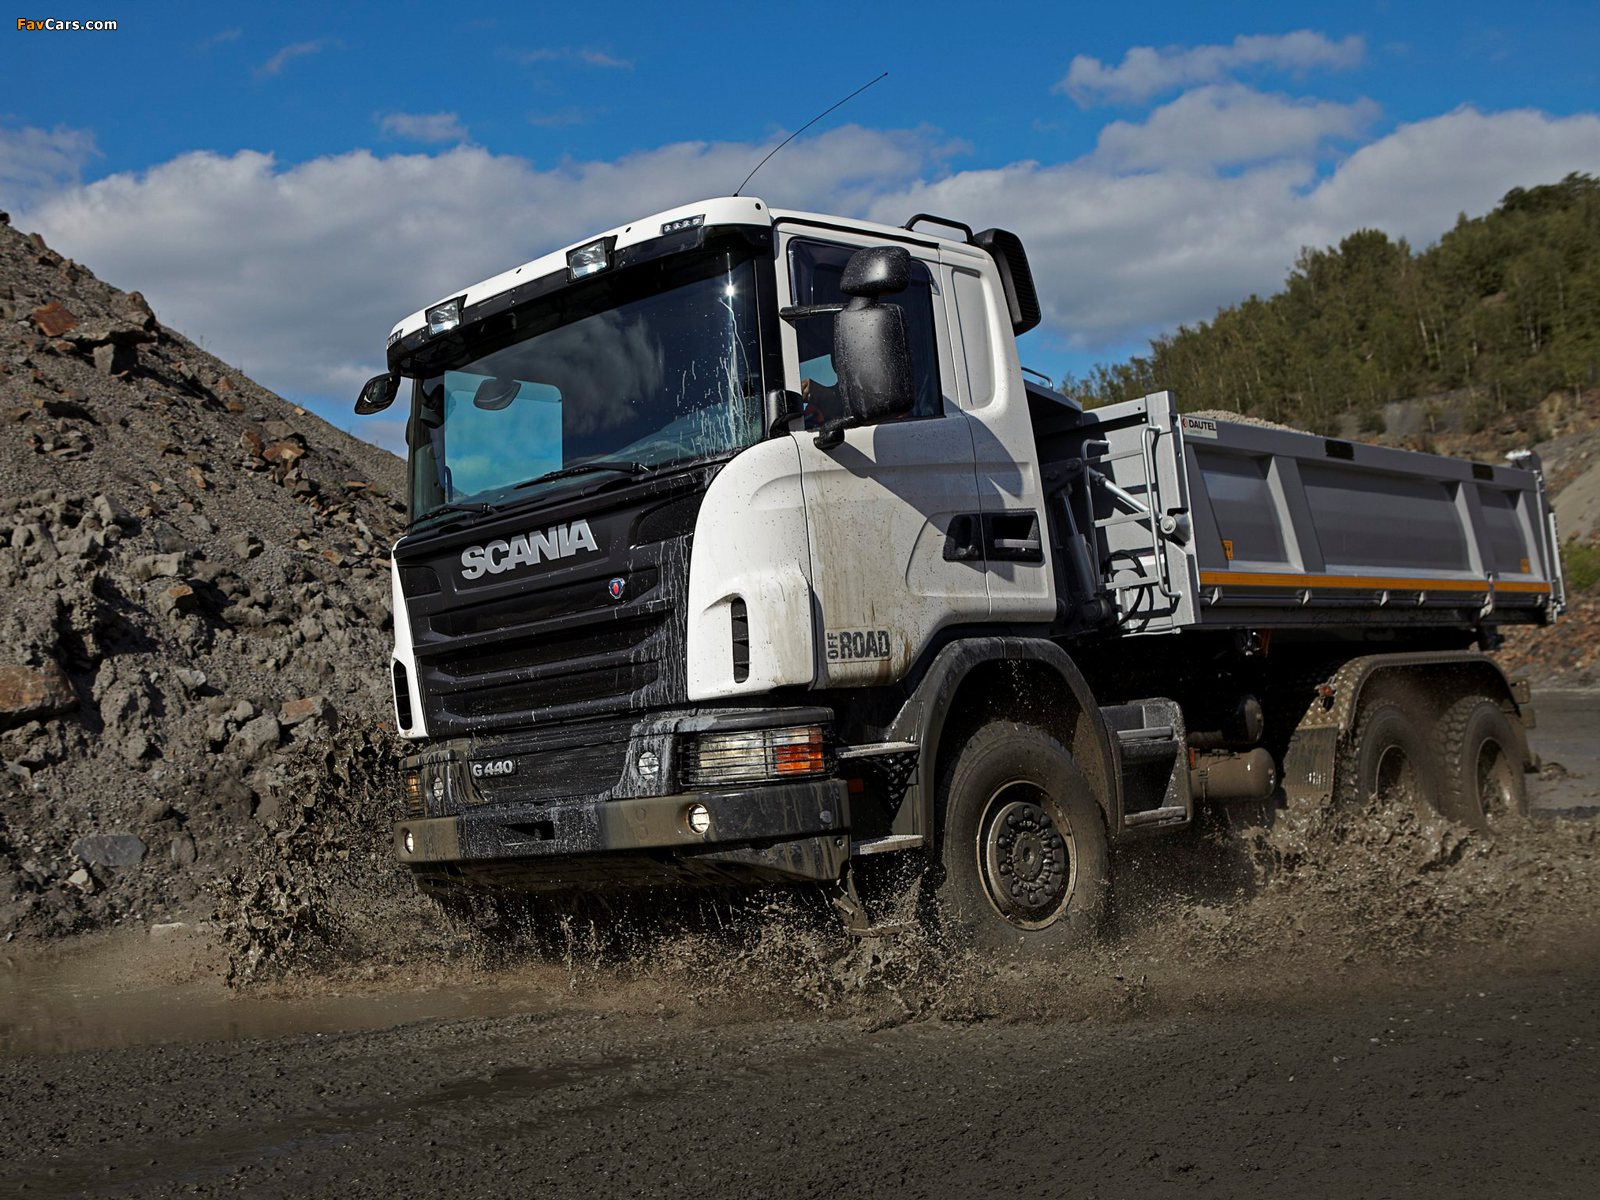 Scania G440 6x6 Tipper Off-Road Package 2011 photos (1600 x 1200)